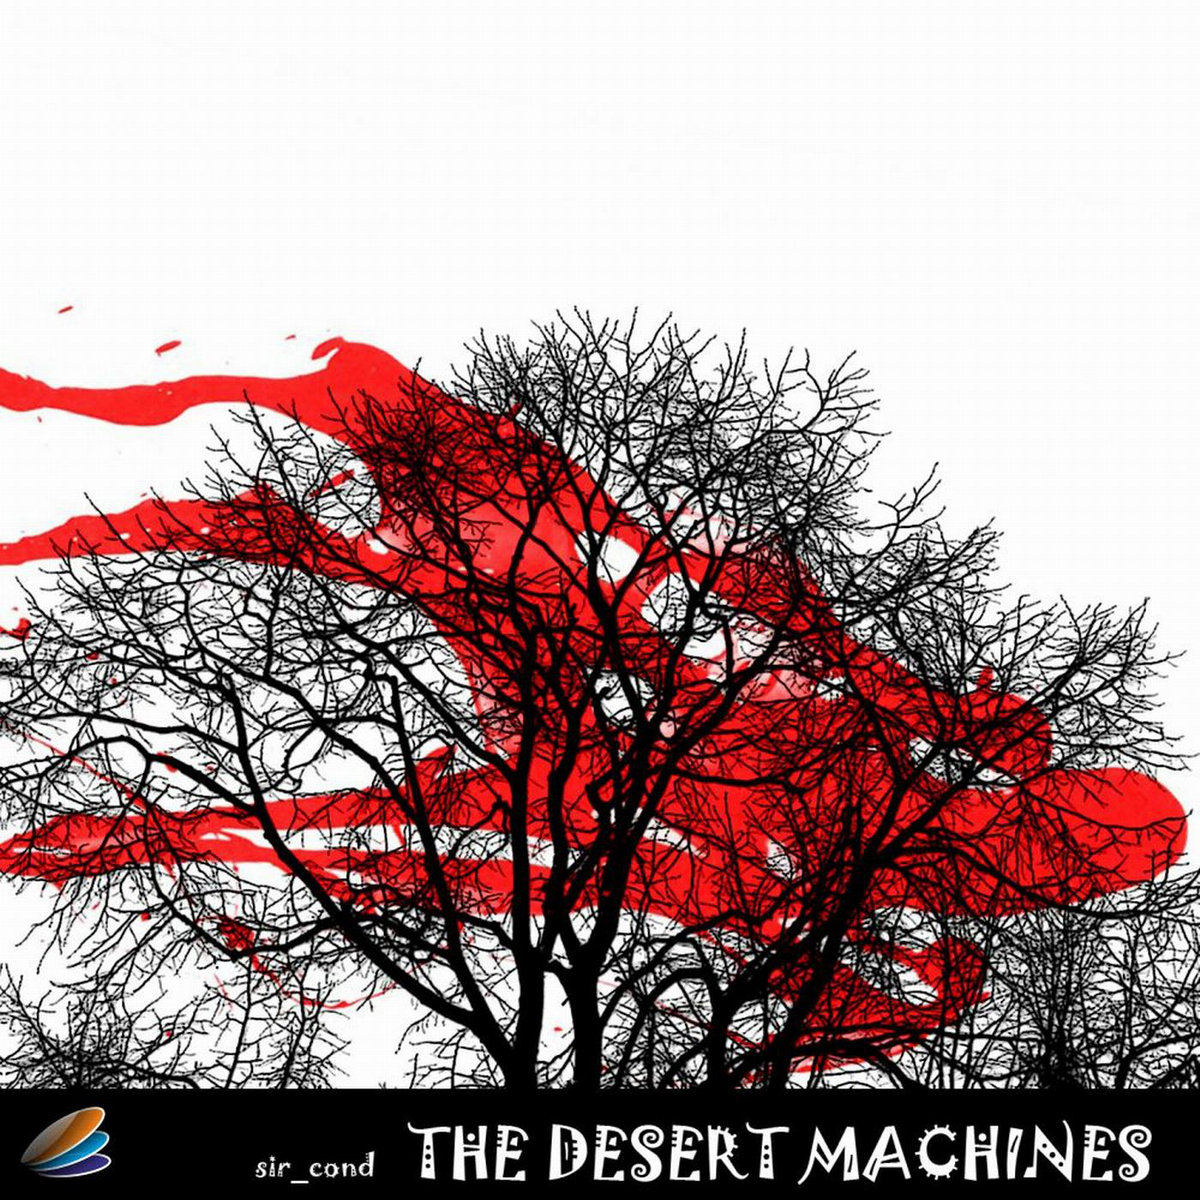 Sir Cond - The Desert Machines